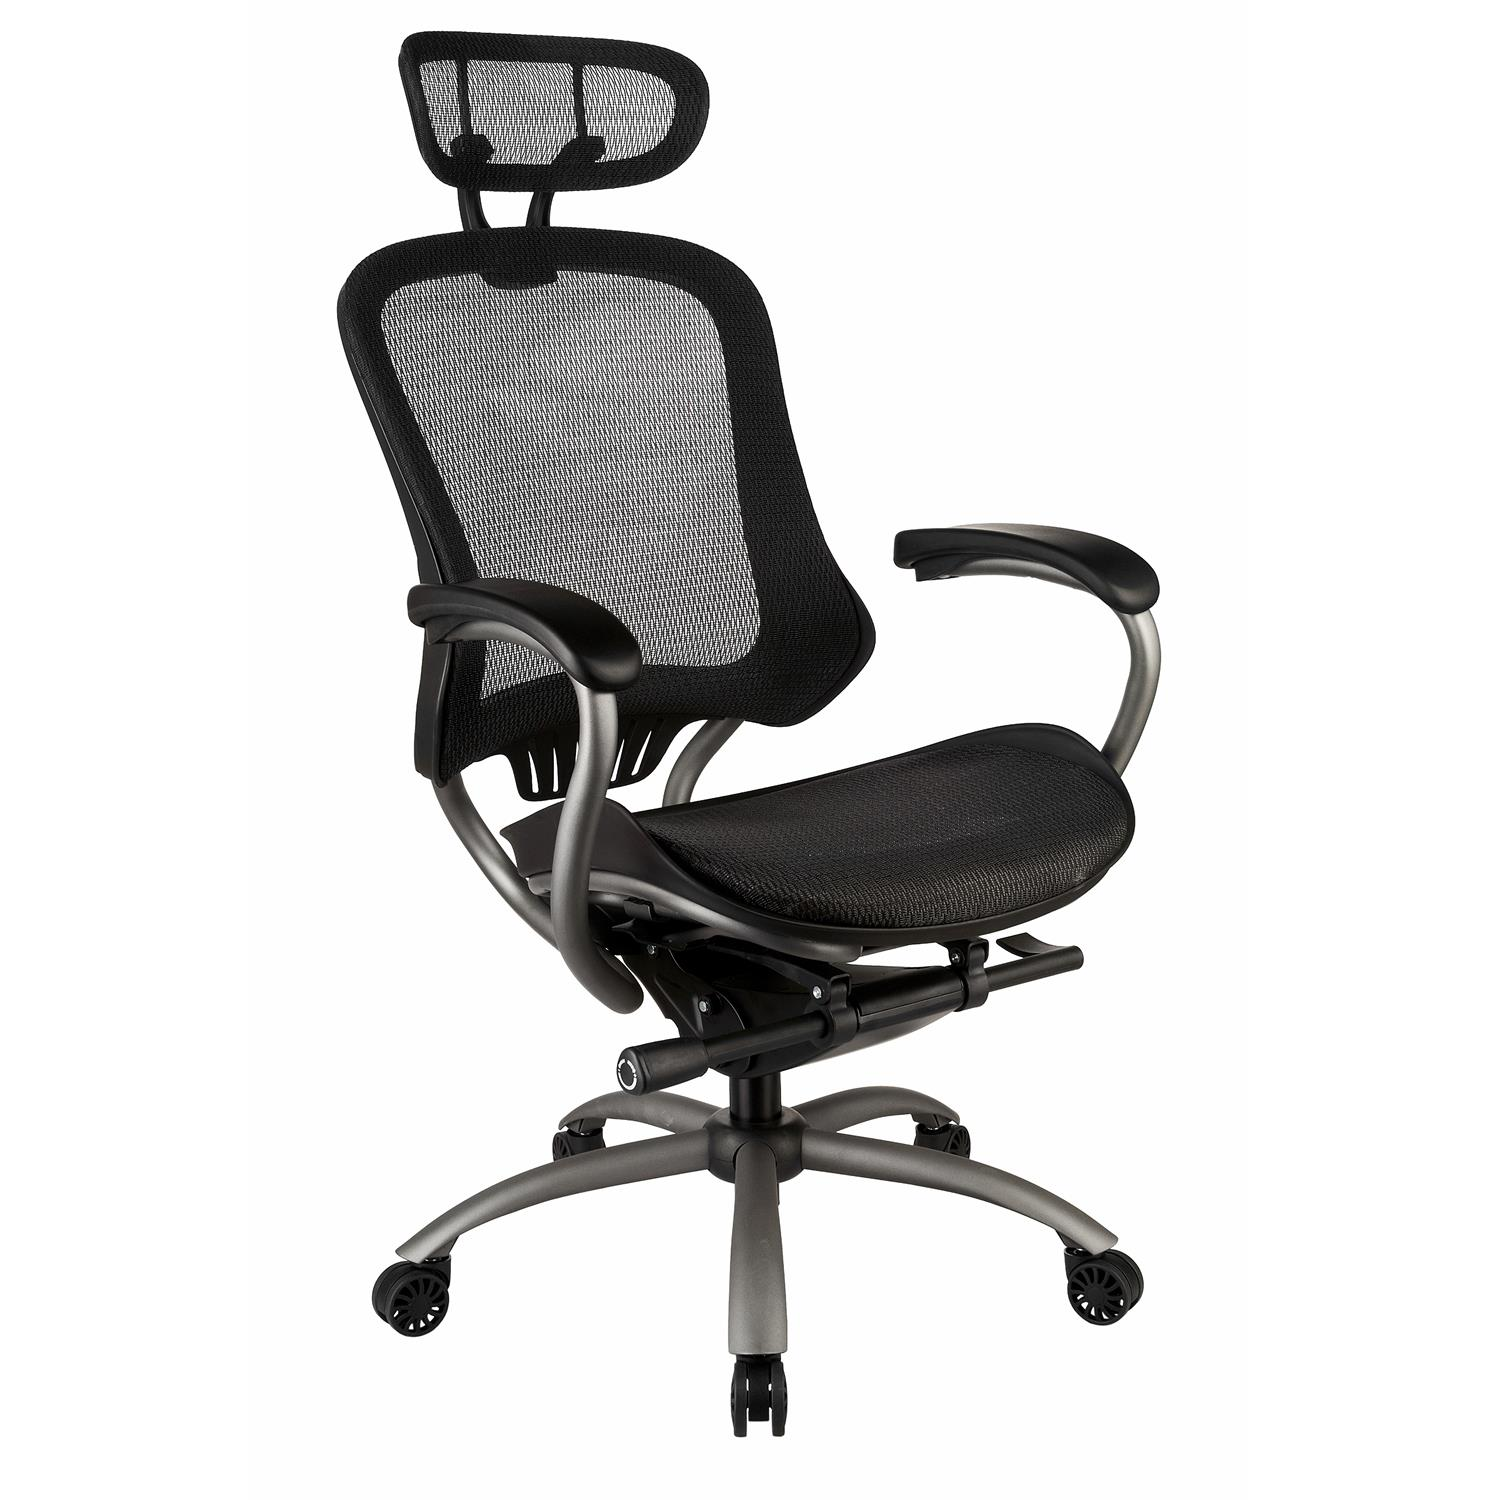 add on headrest for office chair rocking cushions set indoor tygerclaw professional air grid high back